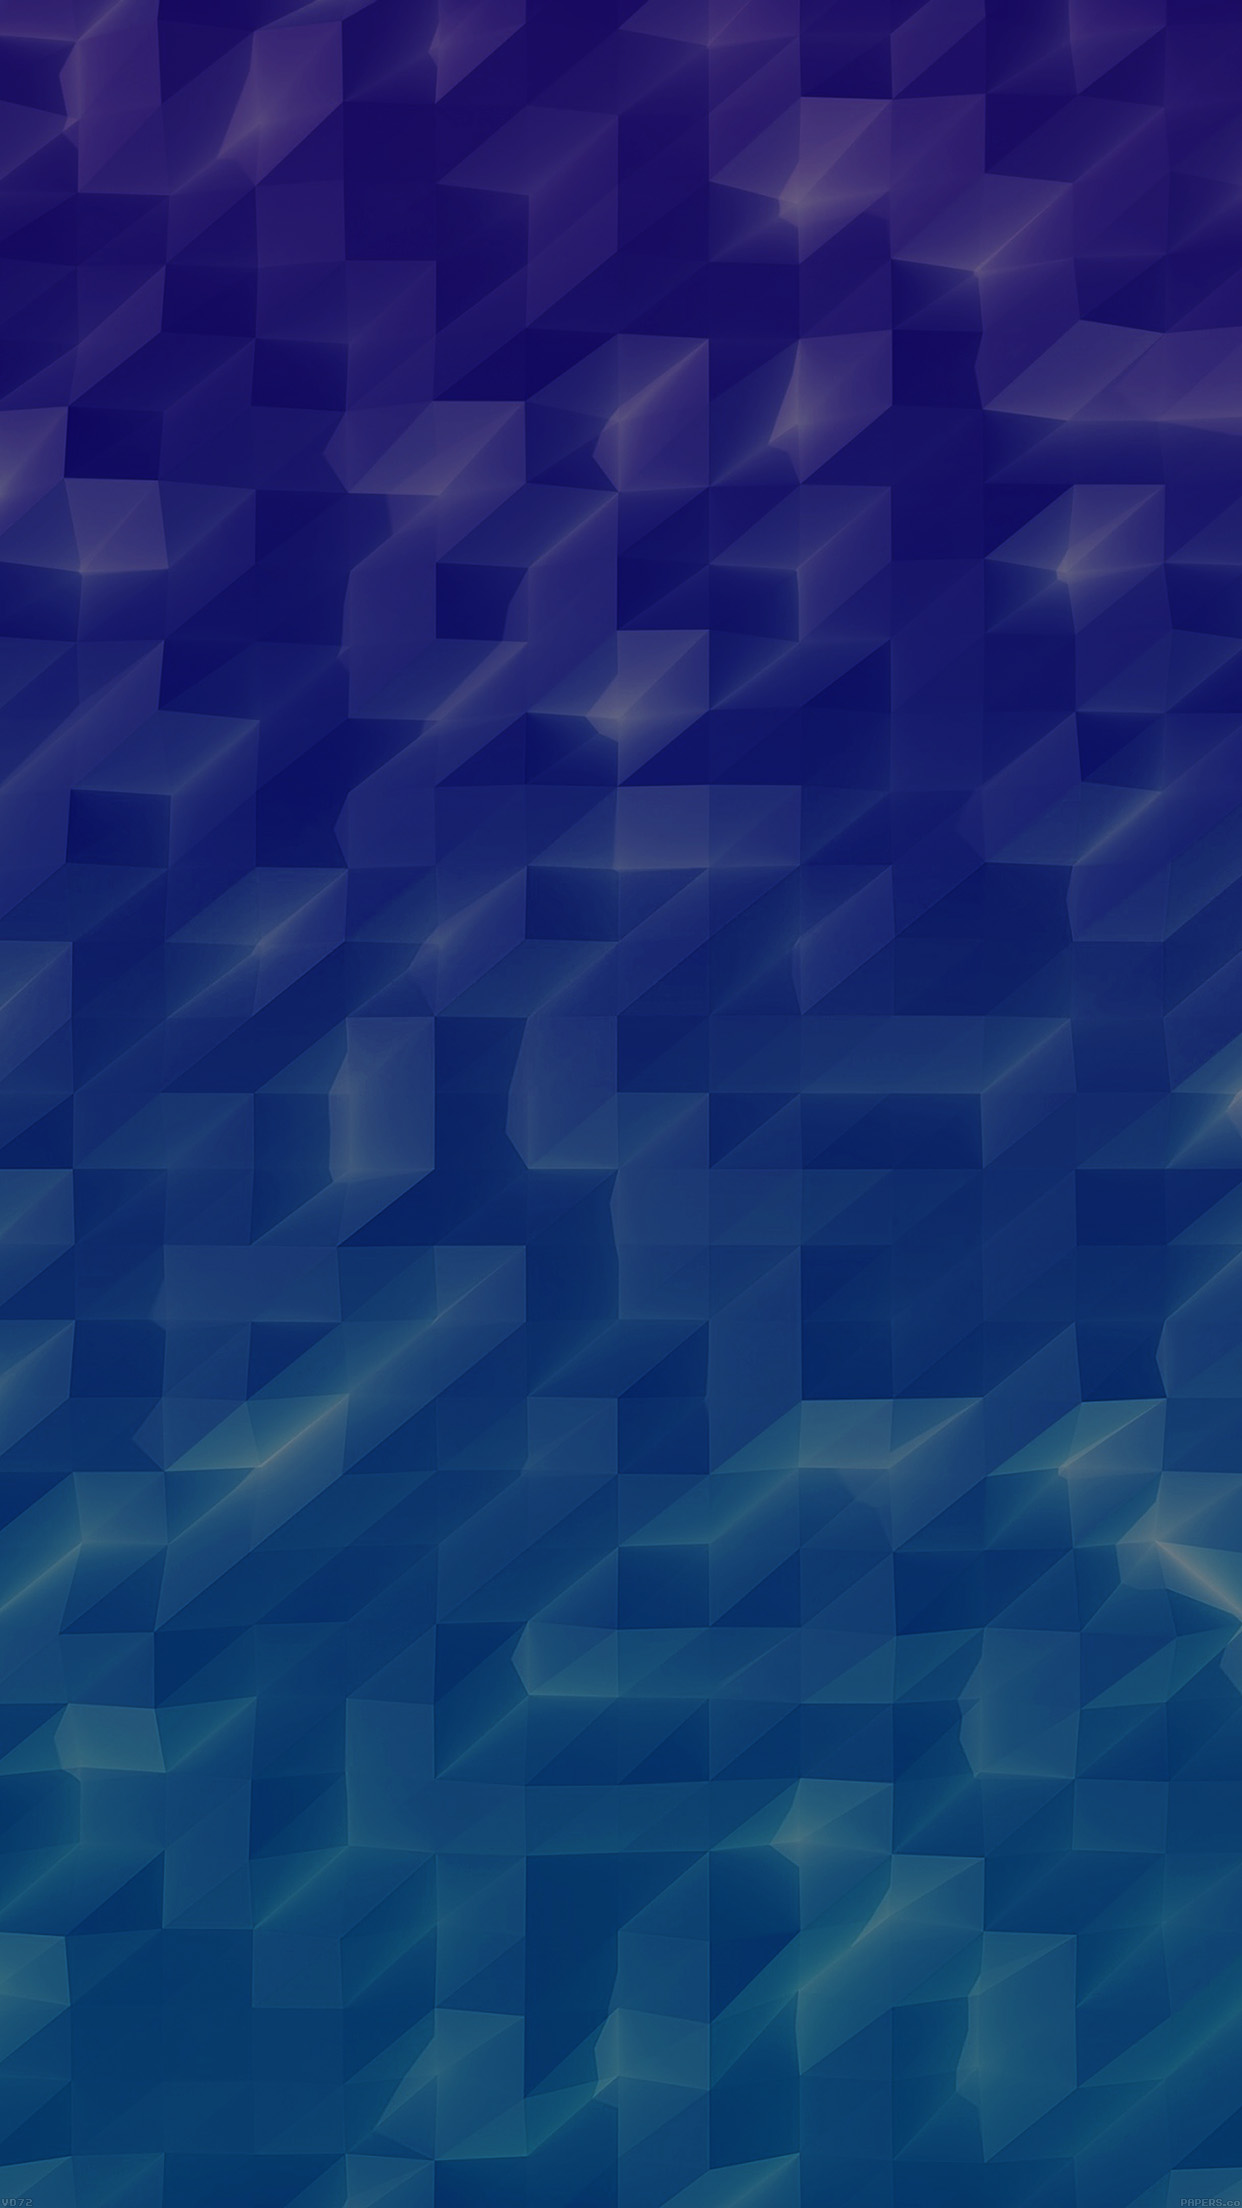 Vd72 low poly sea blue abstract fun pattern for Fun pattern wallpaper